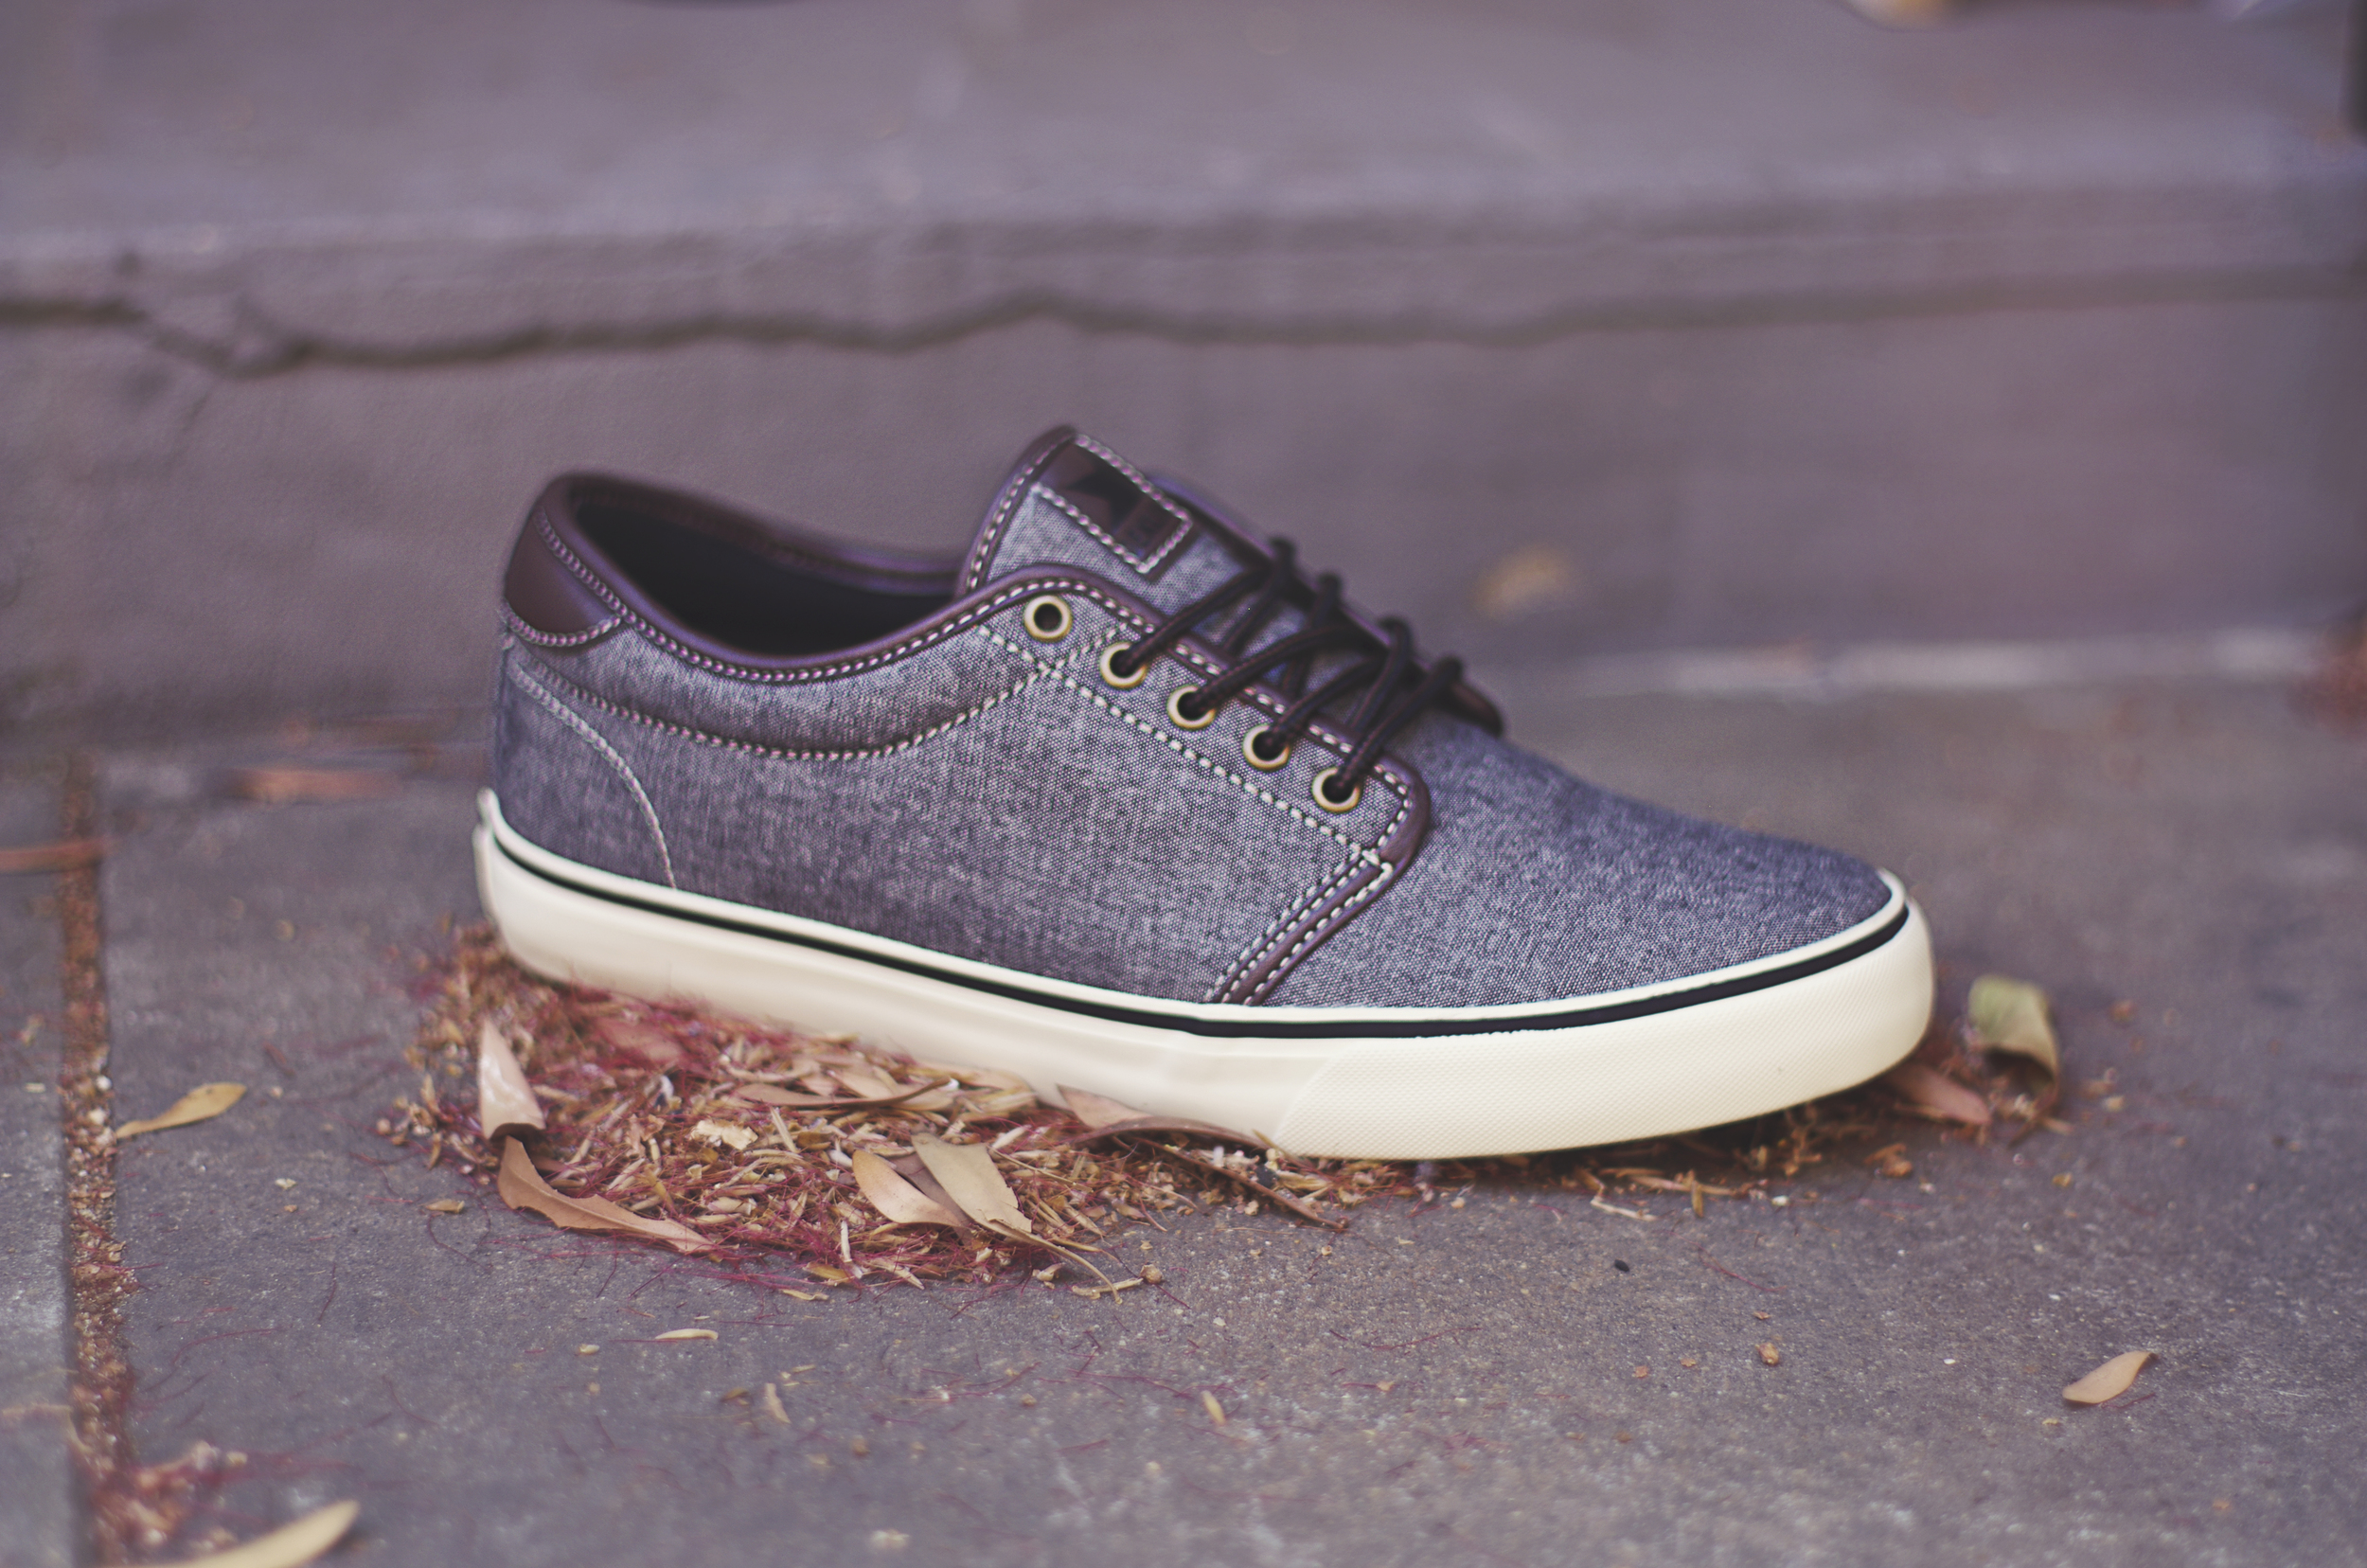 Santa Fe - $60 (Grey/White/Espresso) This shoe comes in a grey chambray upper with white vulc sole,   3M reflective heal,metal eyelets and work boot laces.